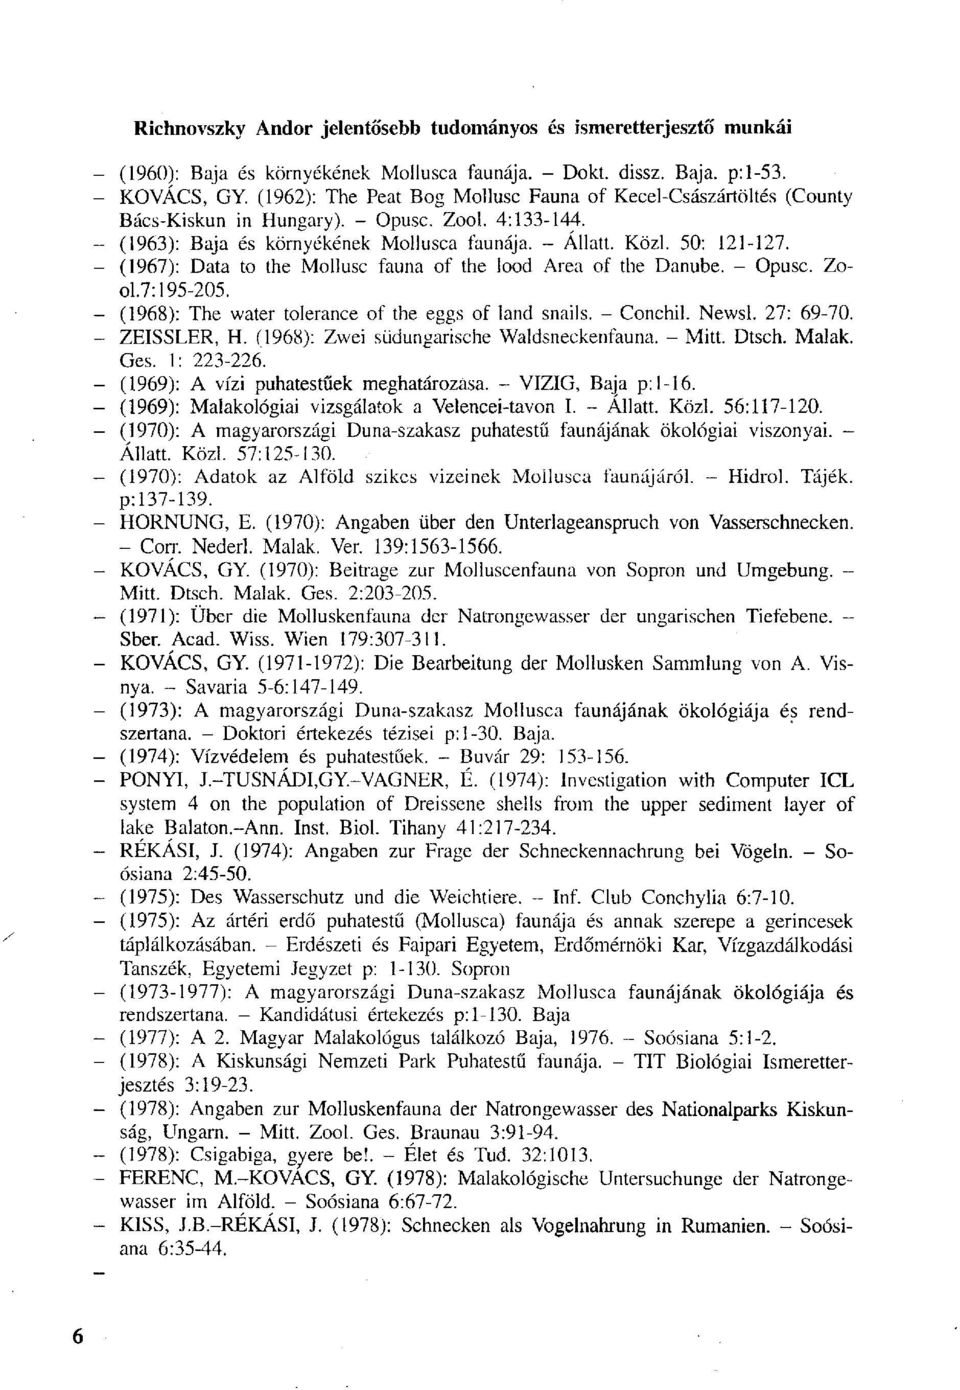 (1967) : Data to the Mollusc fauna of the lood Area of the Danube. - Opusc. Zool.7:195-205. (1968) : The water tolerance of the eggs of land snails. - Conchil. Newsl. 27: 69-70. ZEISSLER, H.